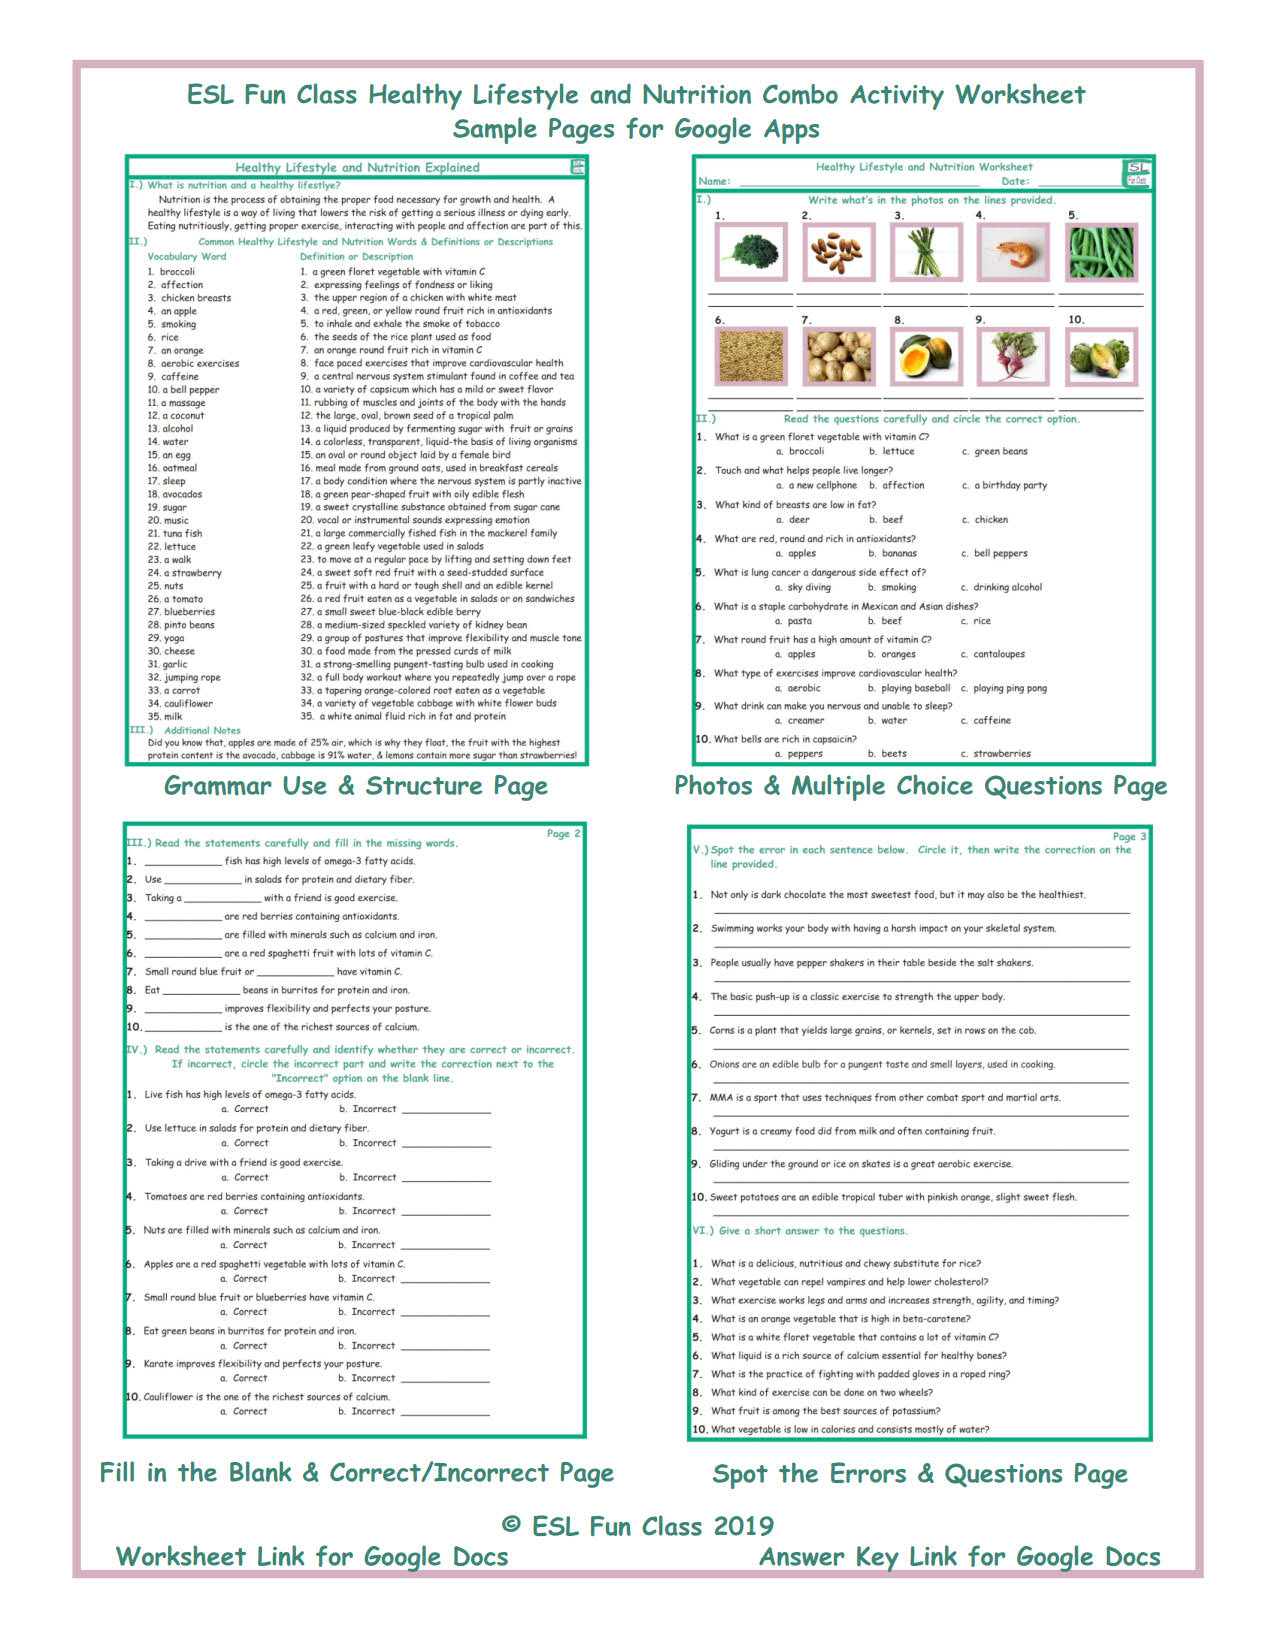 Healthy Lifestyle and Nutrition Interactive Worksheets for Google Apps